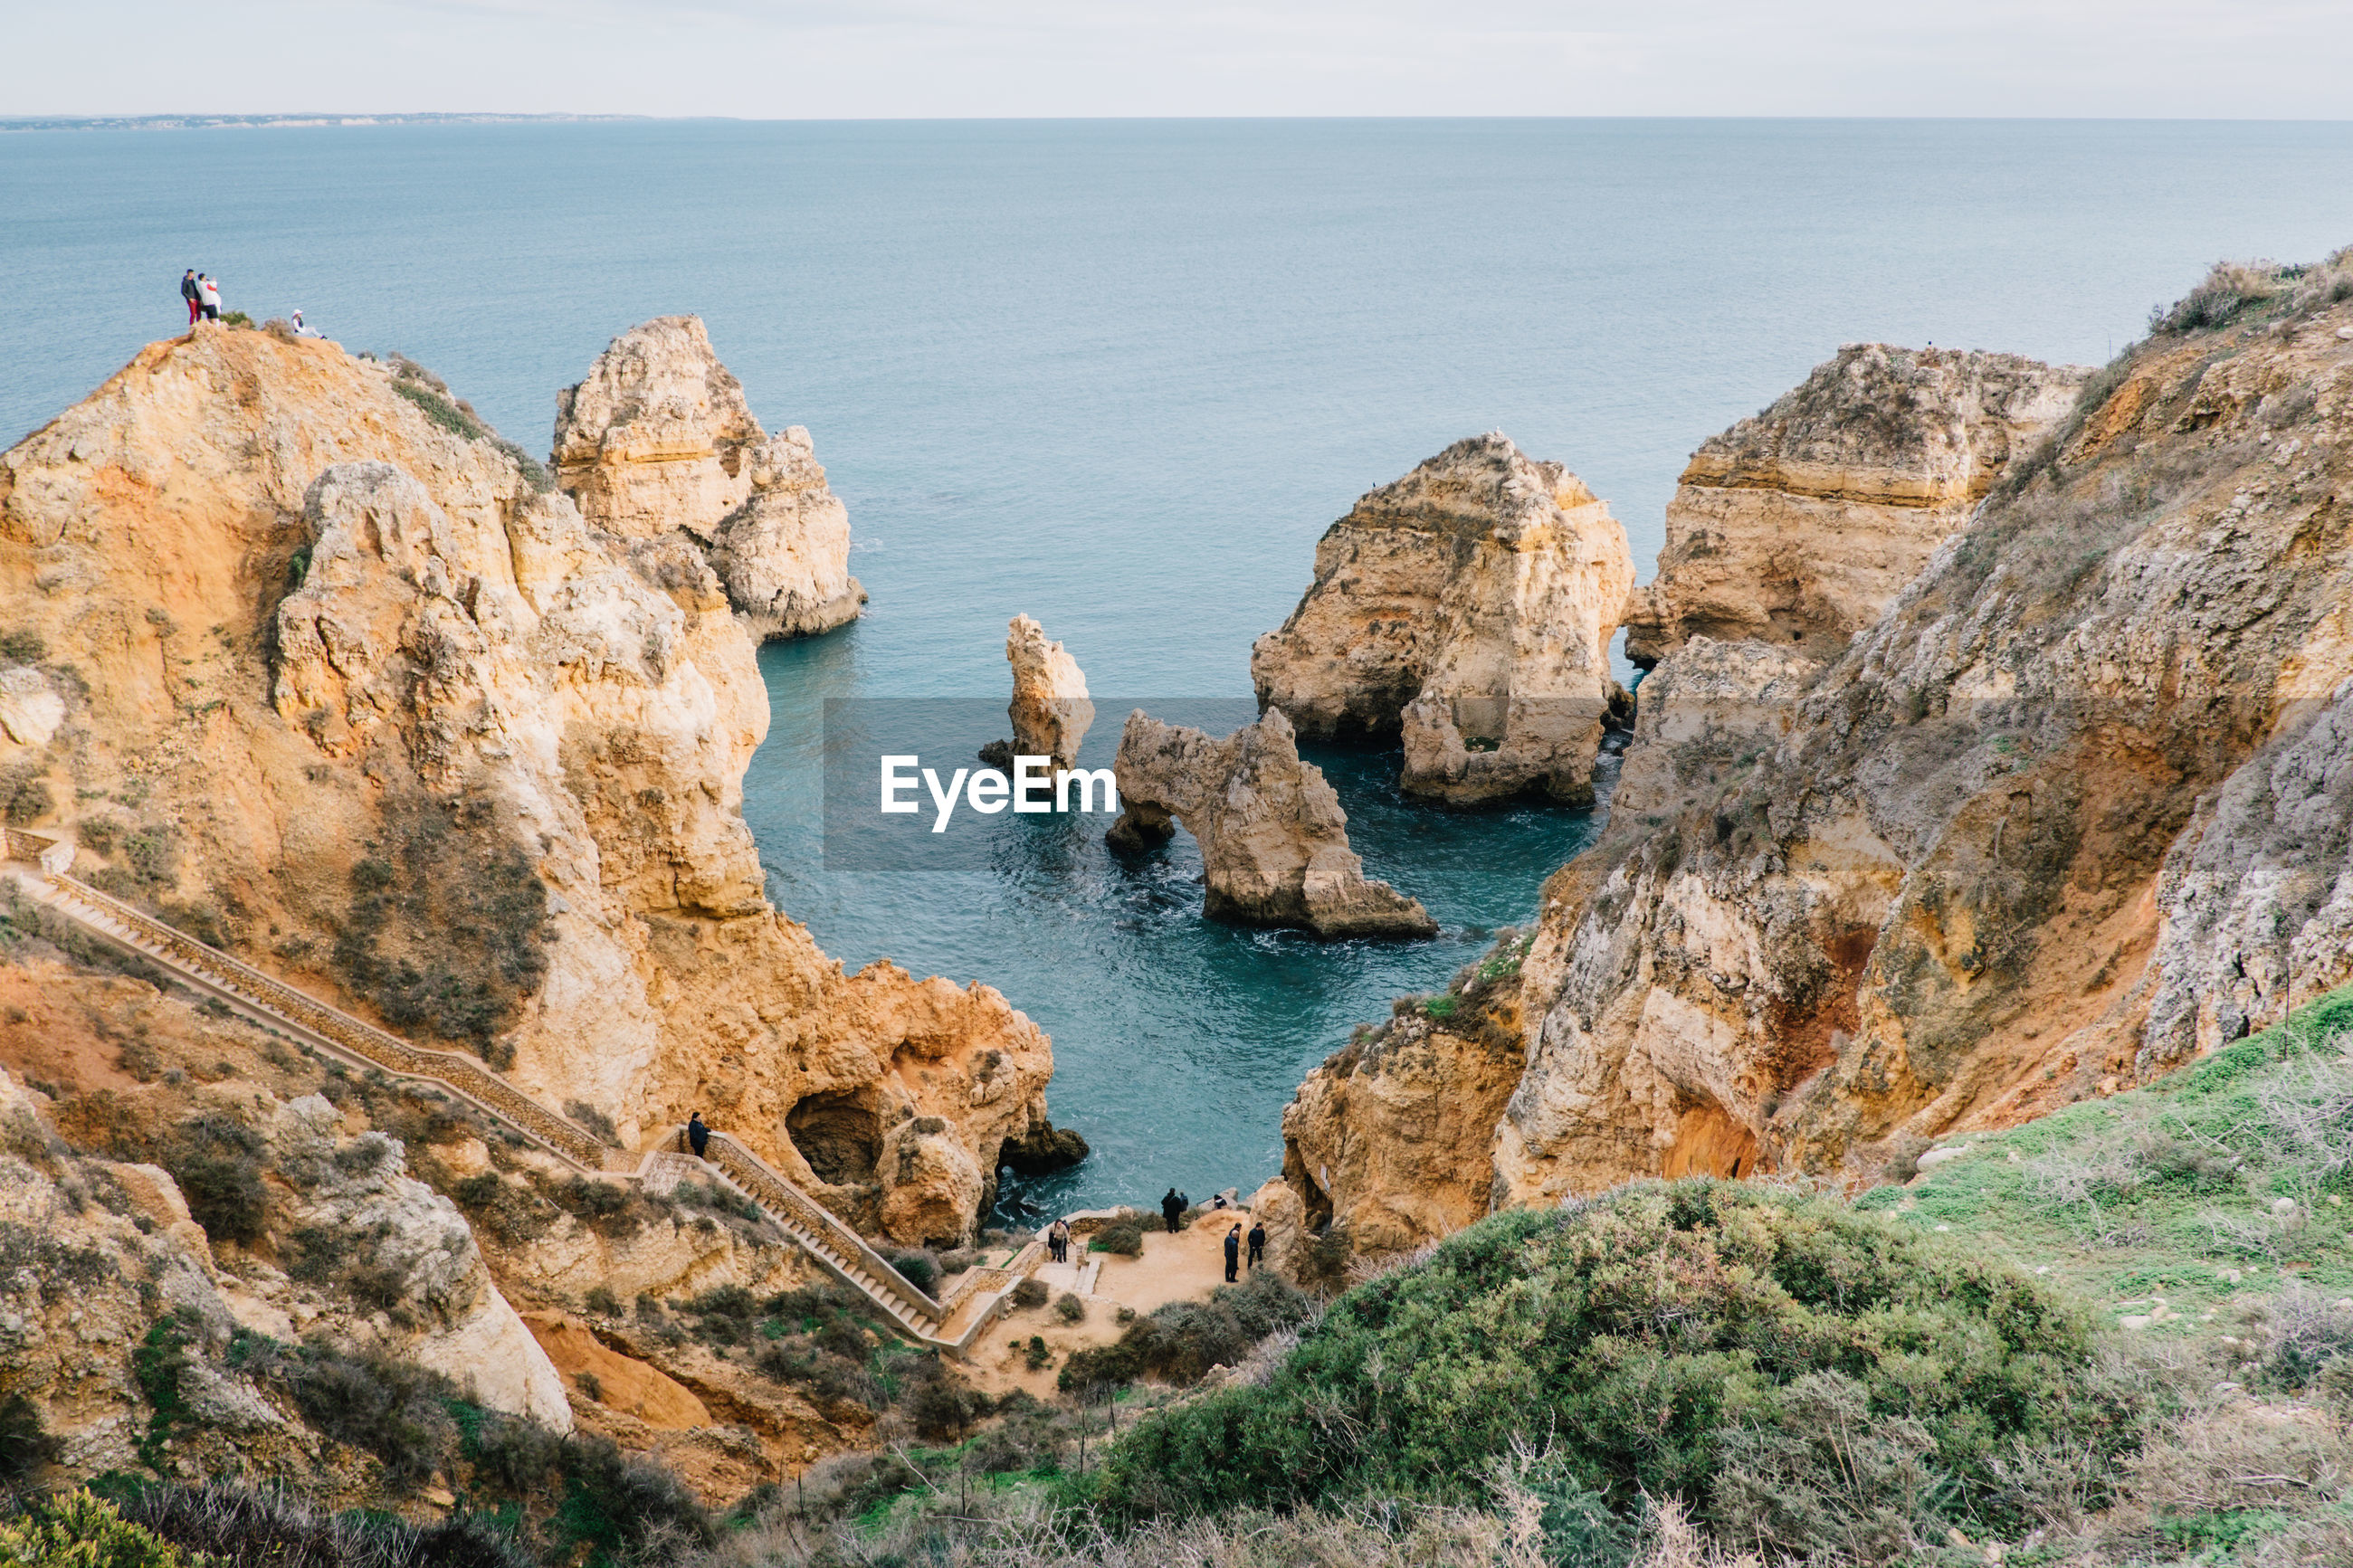 PANORAMIC VIEW OF SEA AND CLIFF